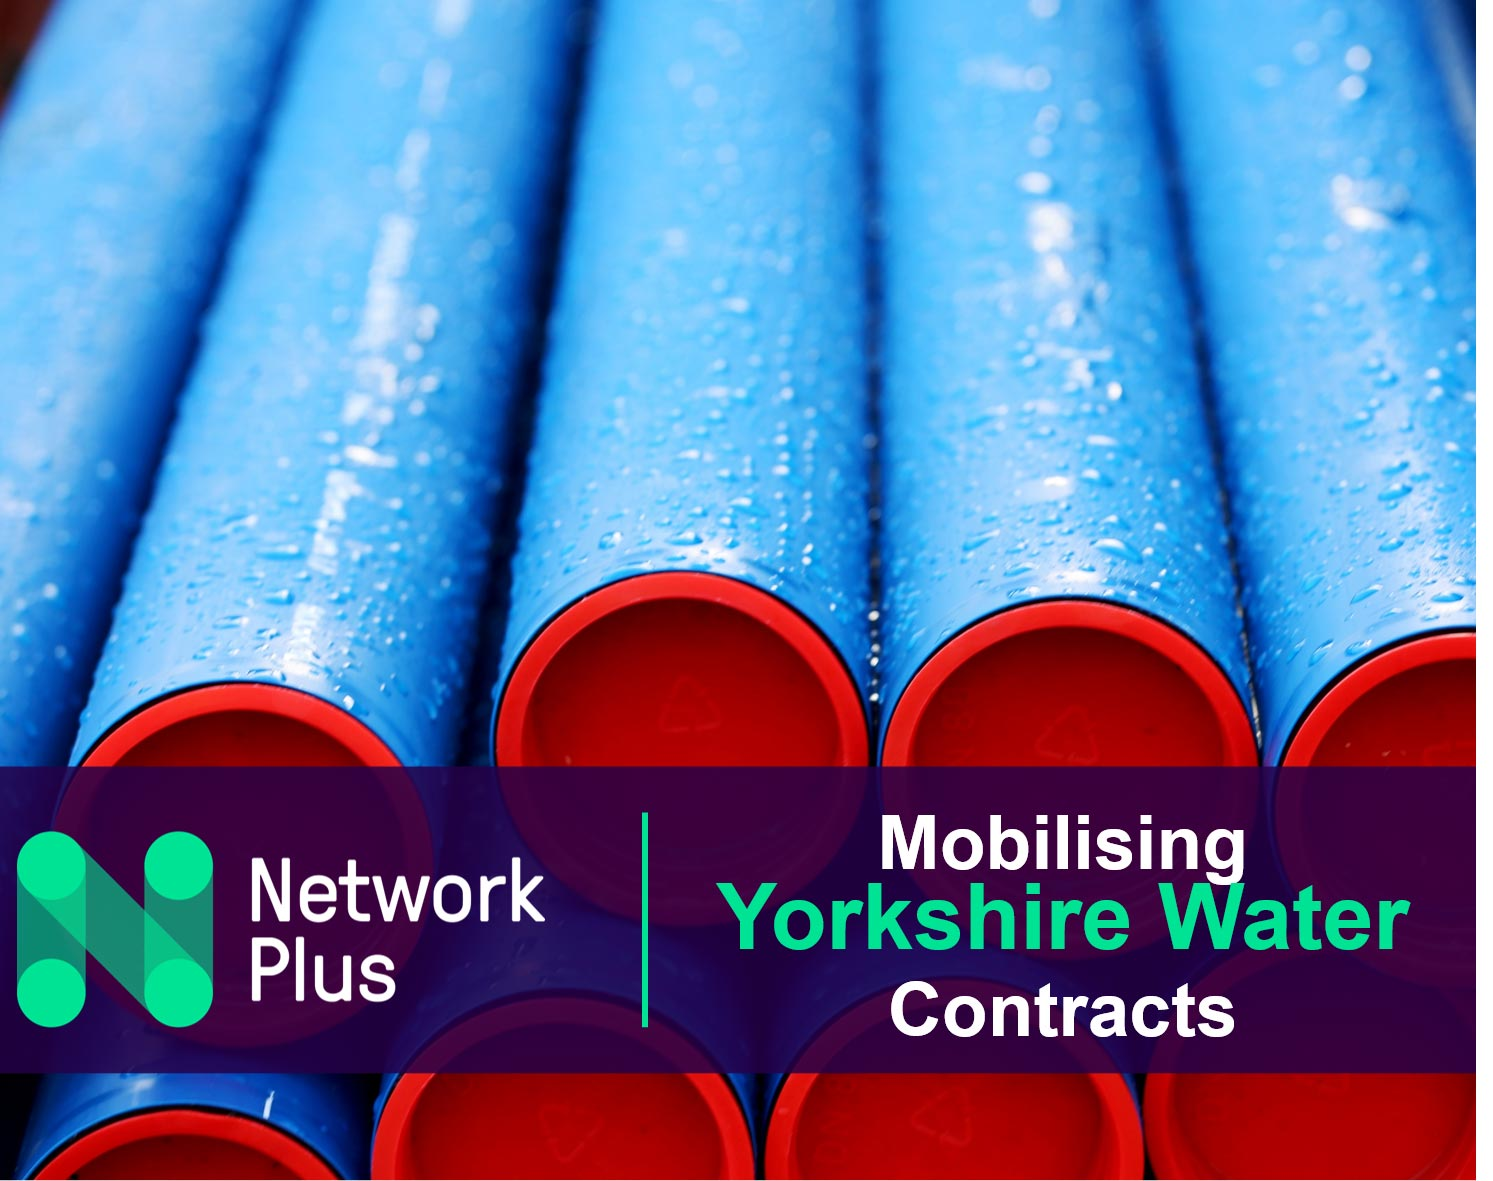 Mobilising Yorkshire Water Contracts